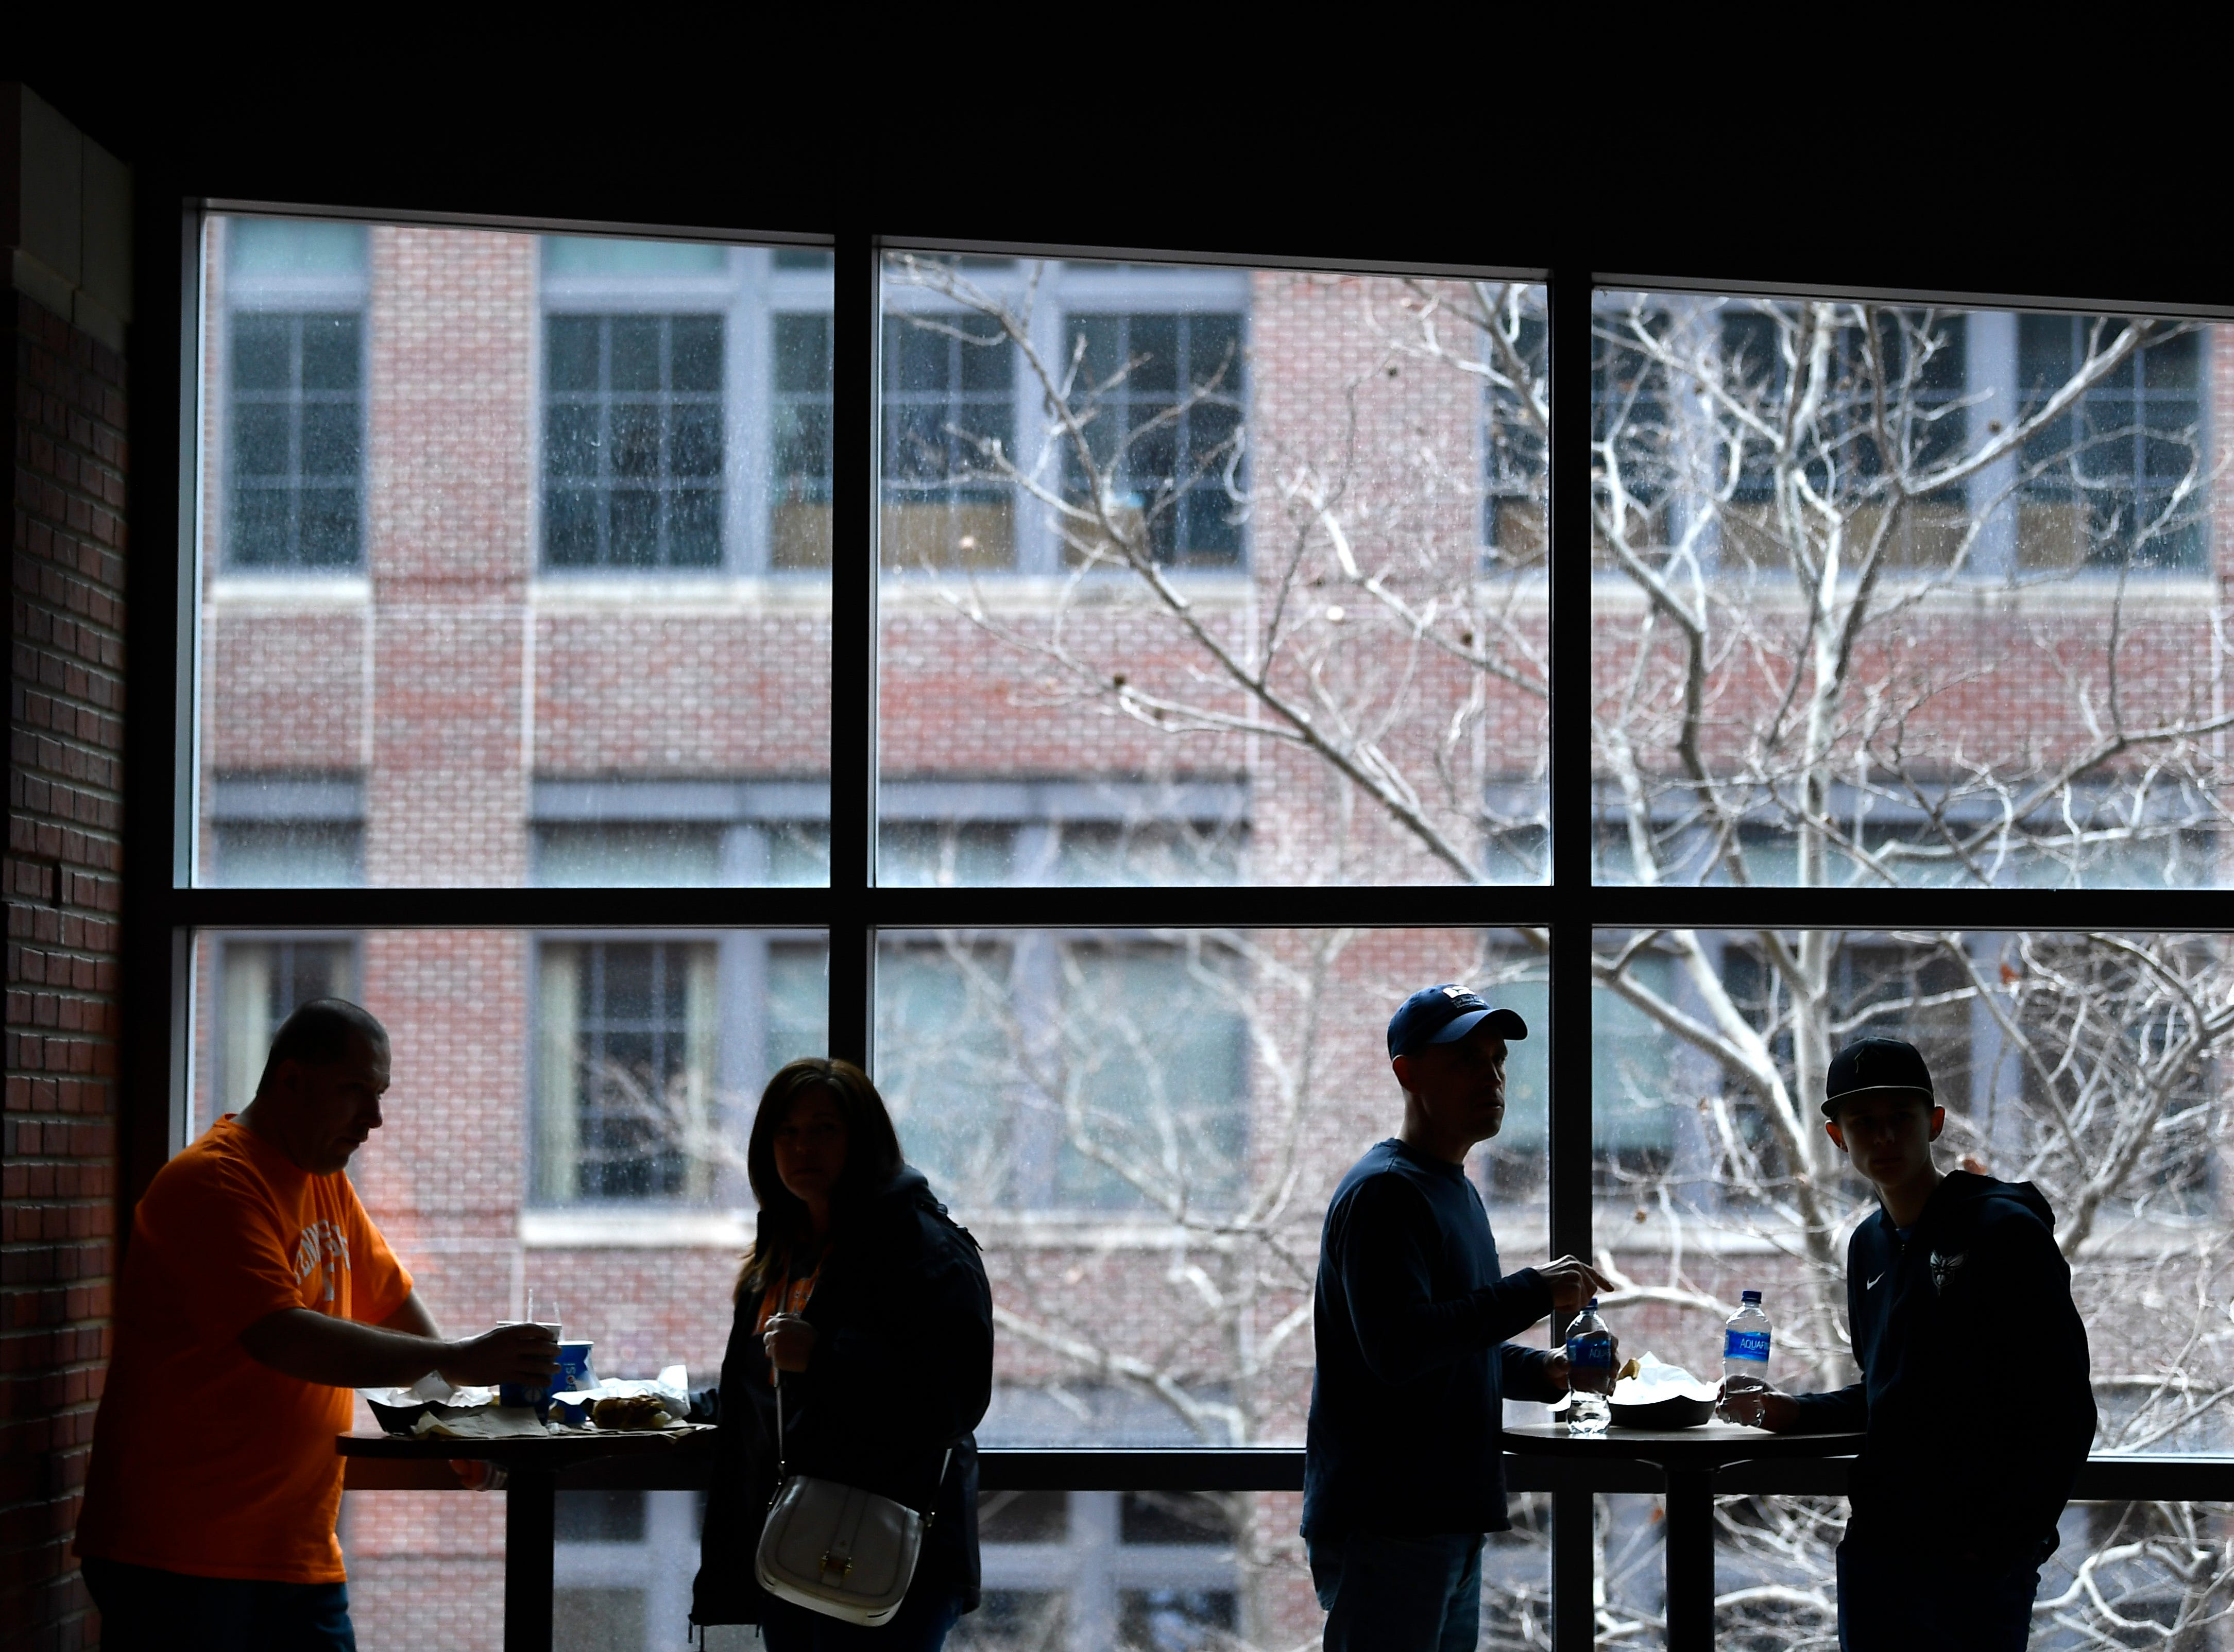 Fans eat on the concourse before the Tennessee Volunteers' basketball game against the Colgate Raiders in the first round of the NCAA Tournament at Nationwide Arena in Columbus, Ohio, on Friday, March 22, 2019.